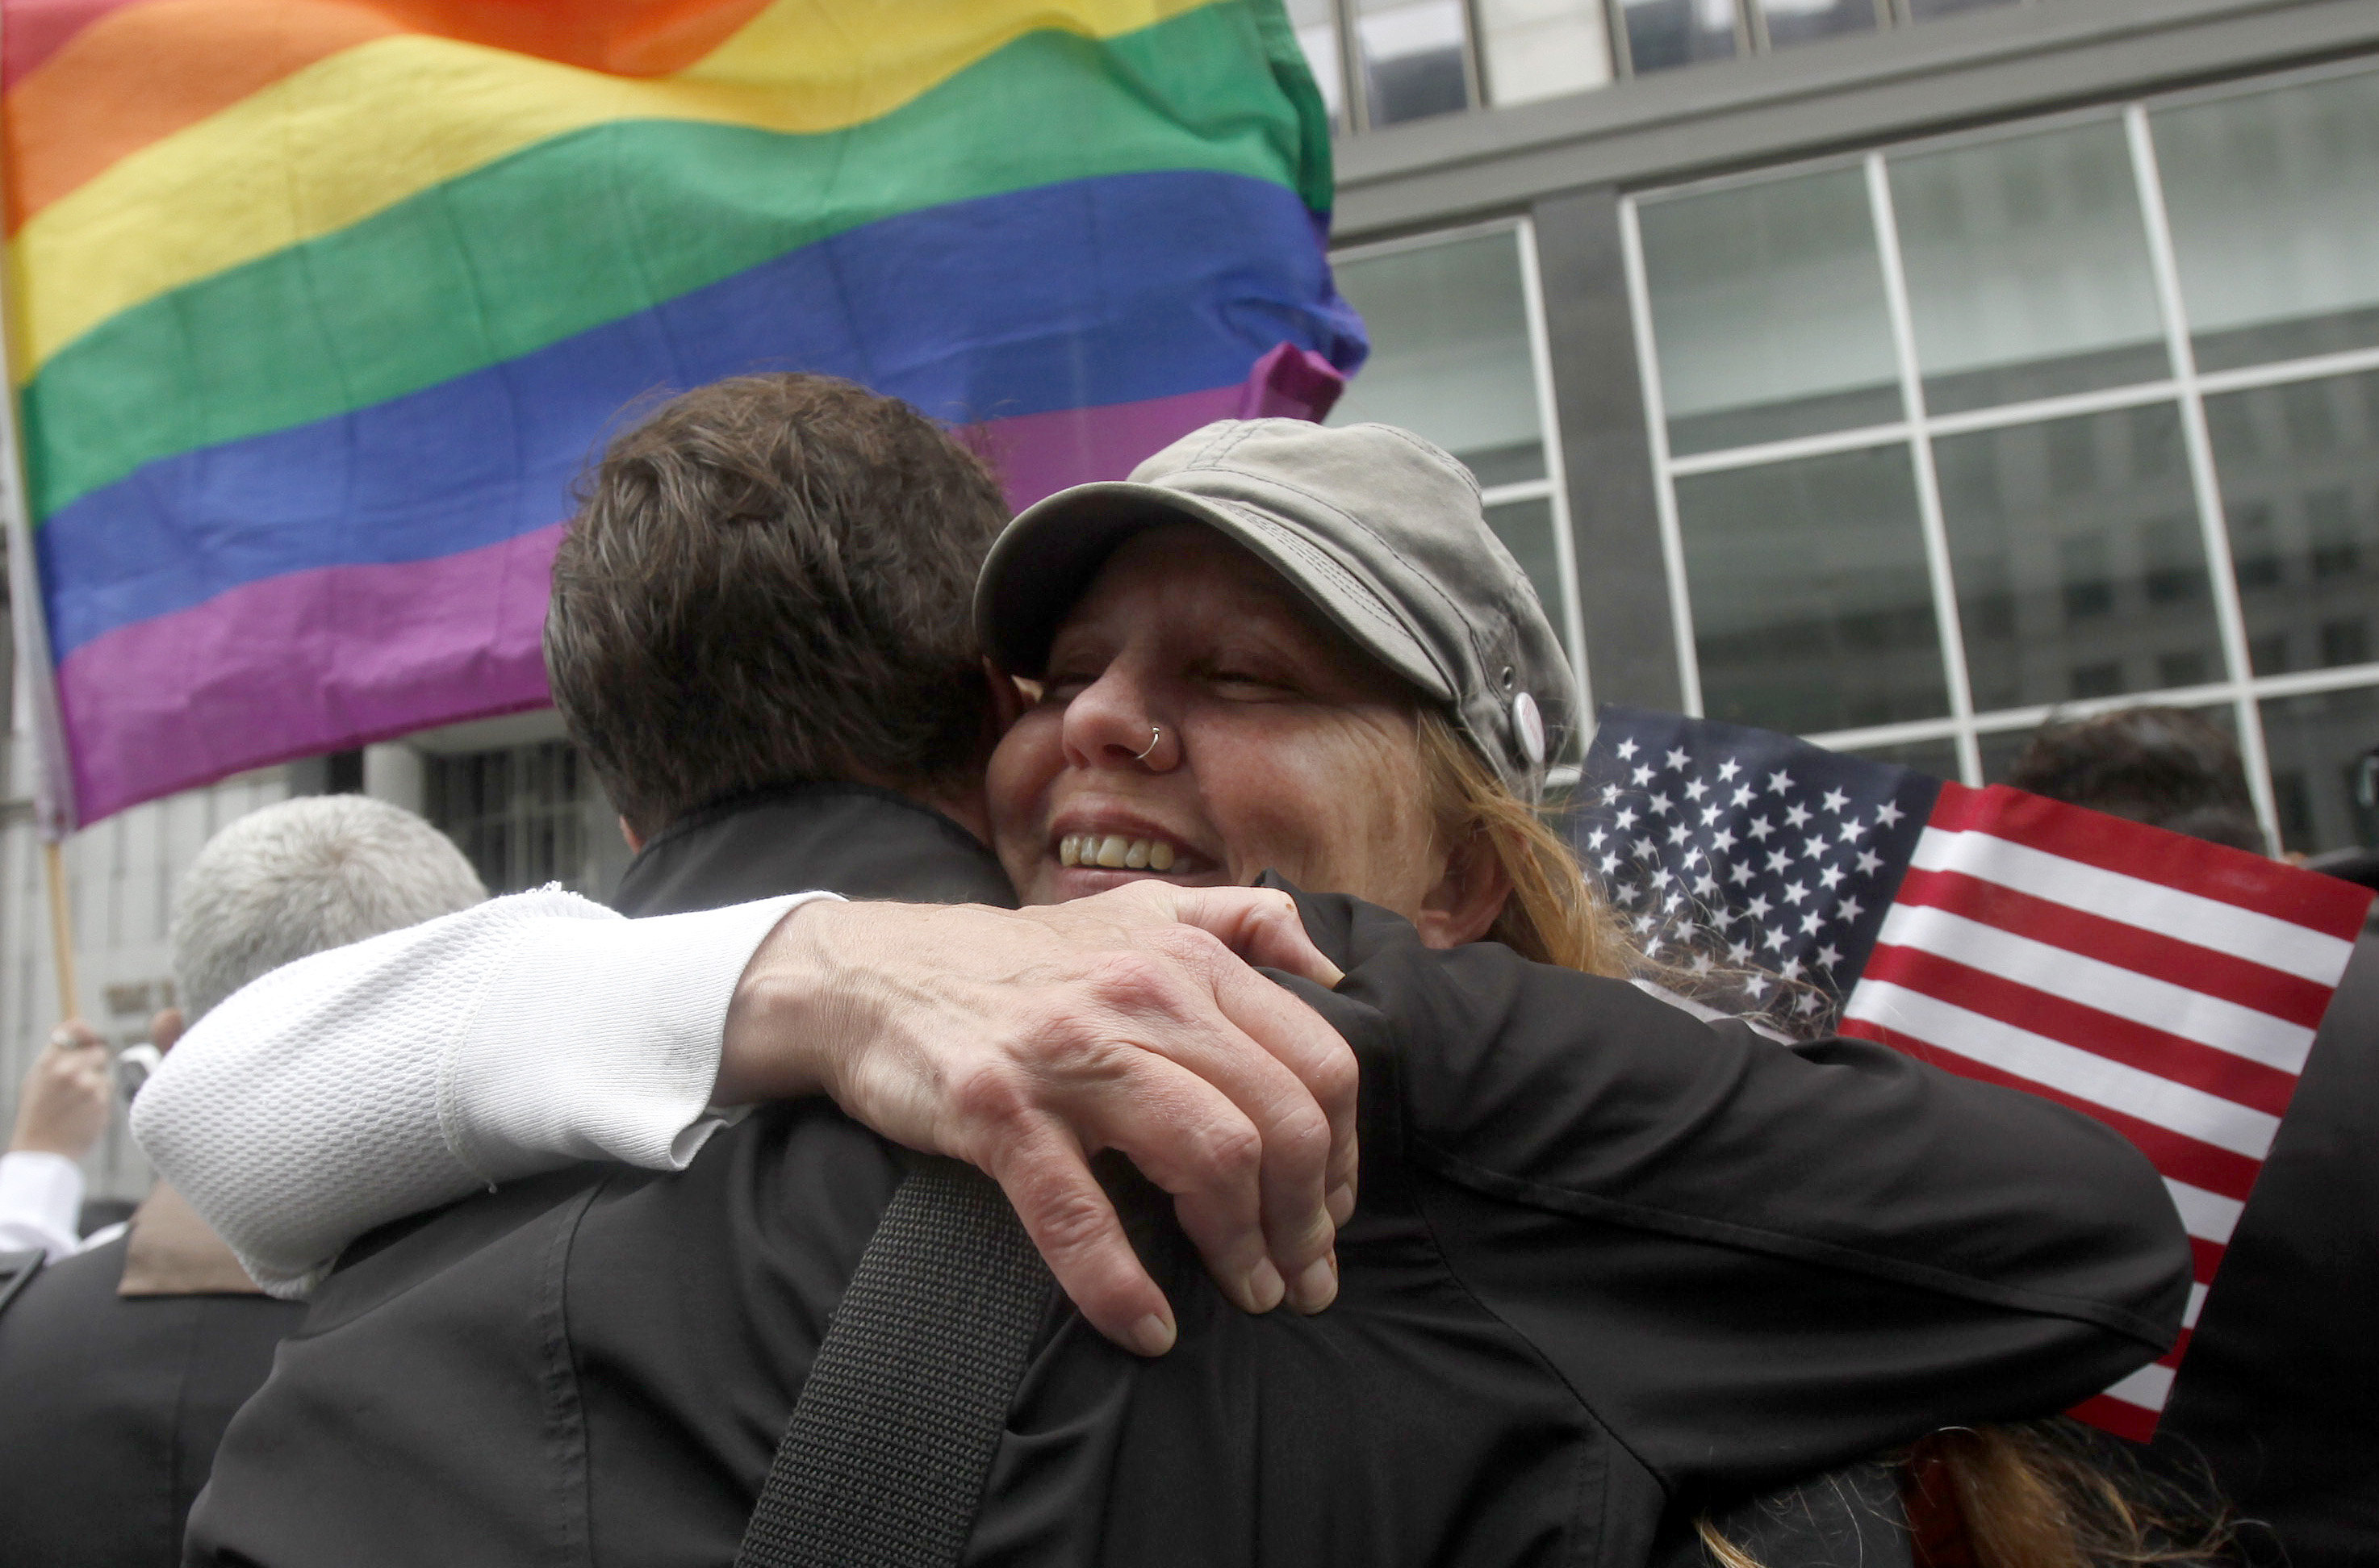 Supporters of gay marriage celebrate after a federal judge ruled California's ban on same-sex partnerships unconstitutional.